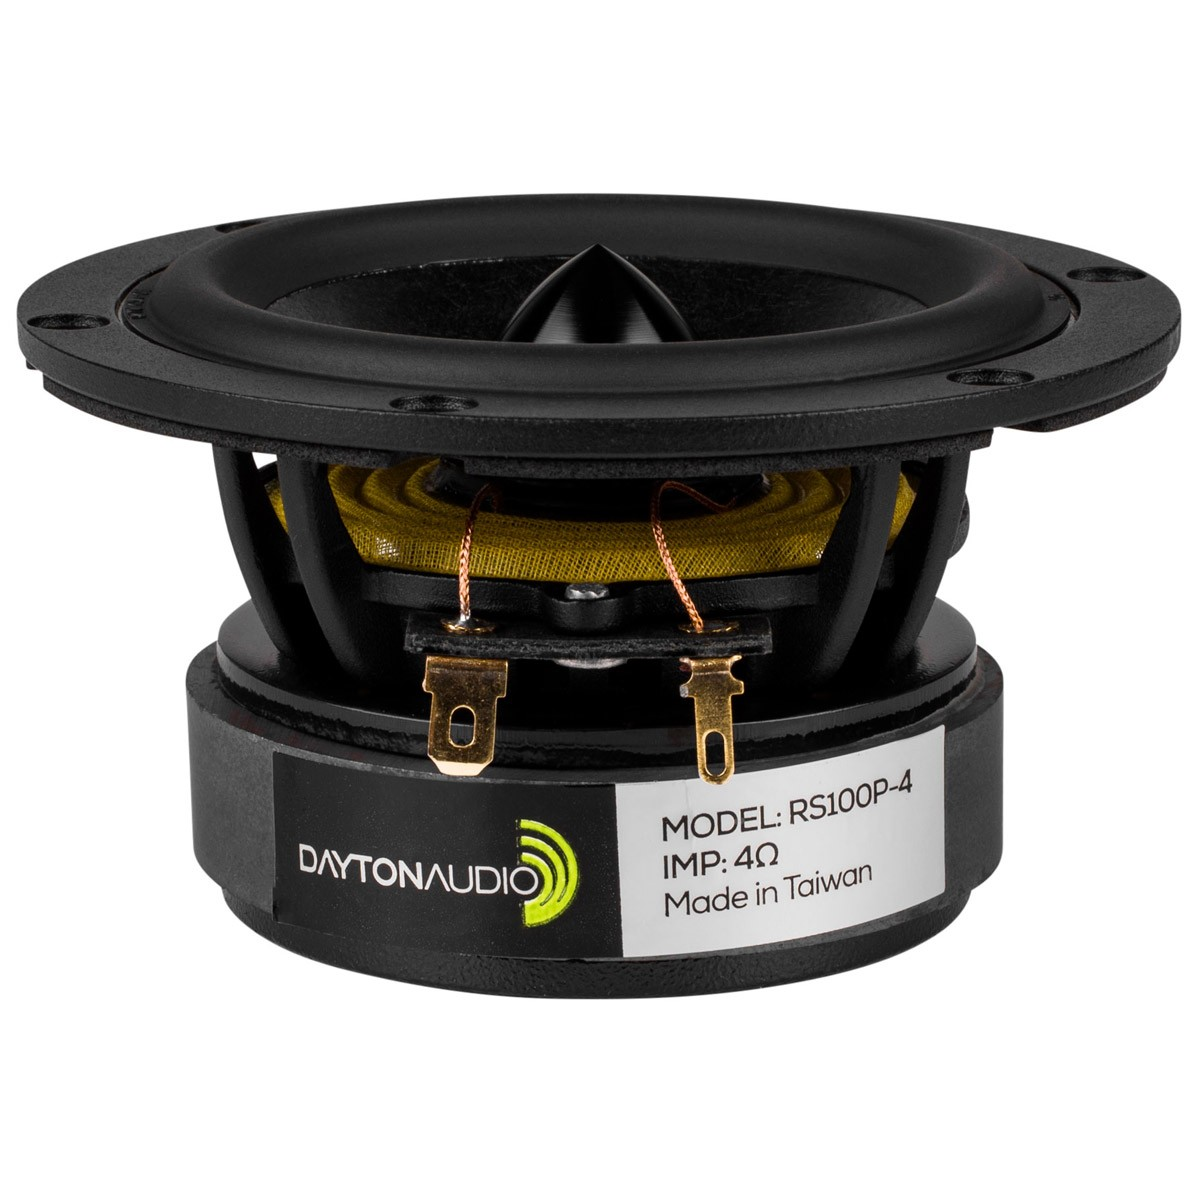 DAYTON AUDIO RS100P-4 Reference Speaker Driver Woofer 30W 4 Ohm 88dB 85Hz - 13500Hz Ø10.2cm